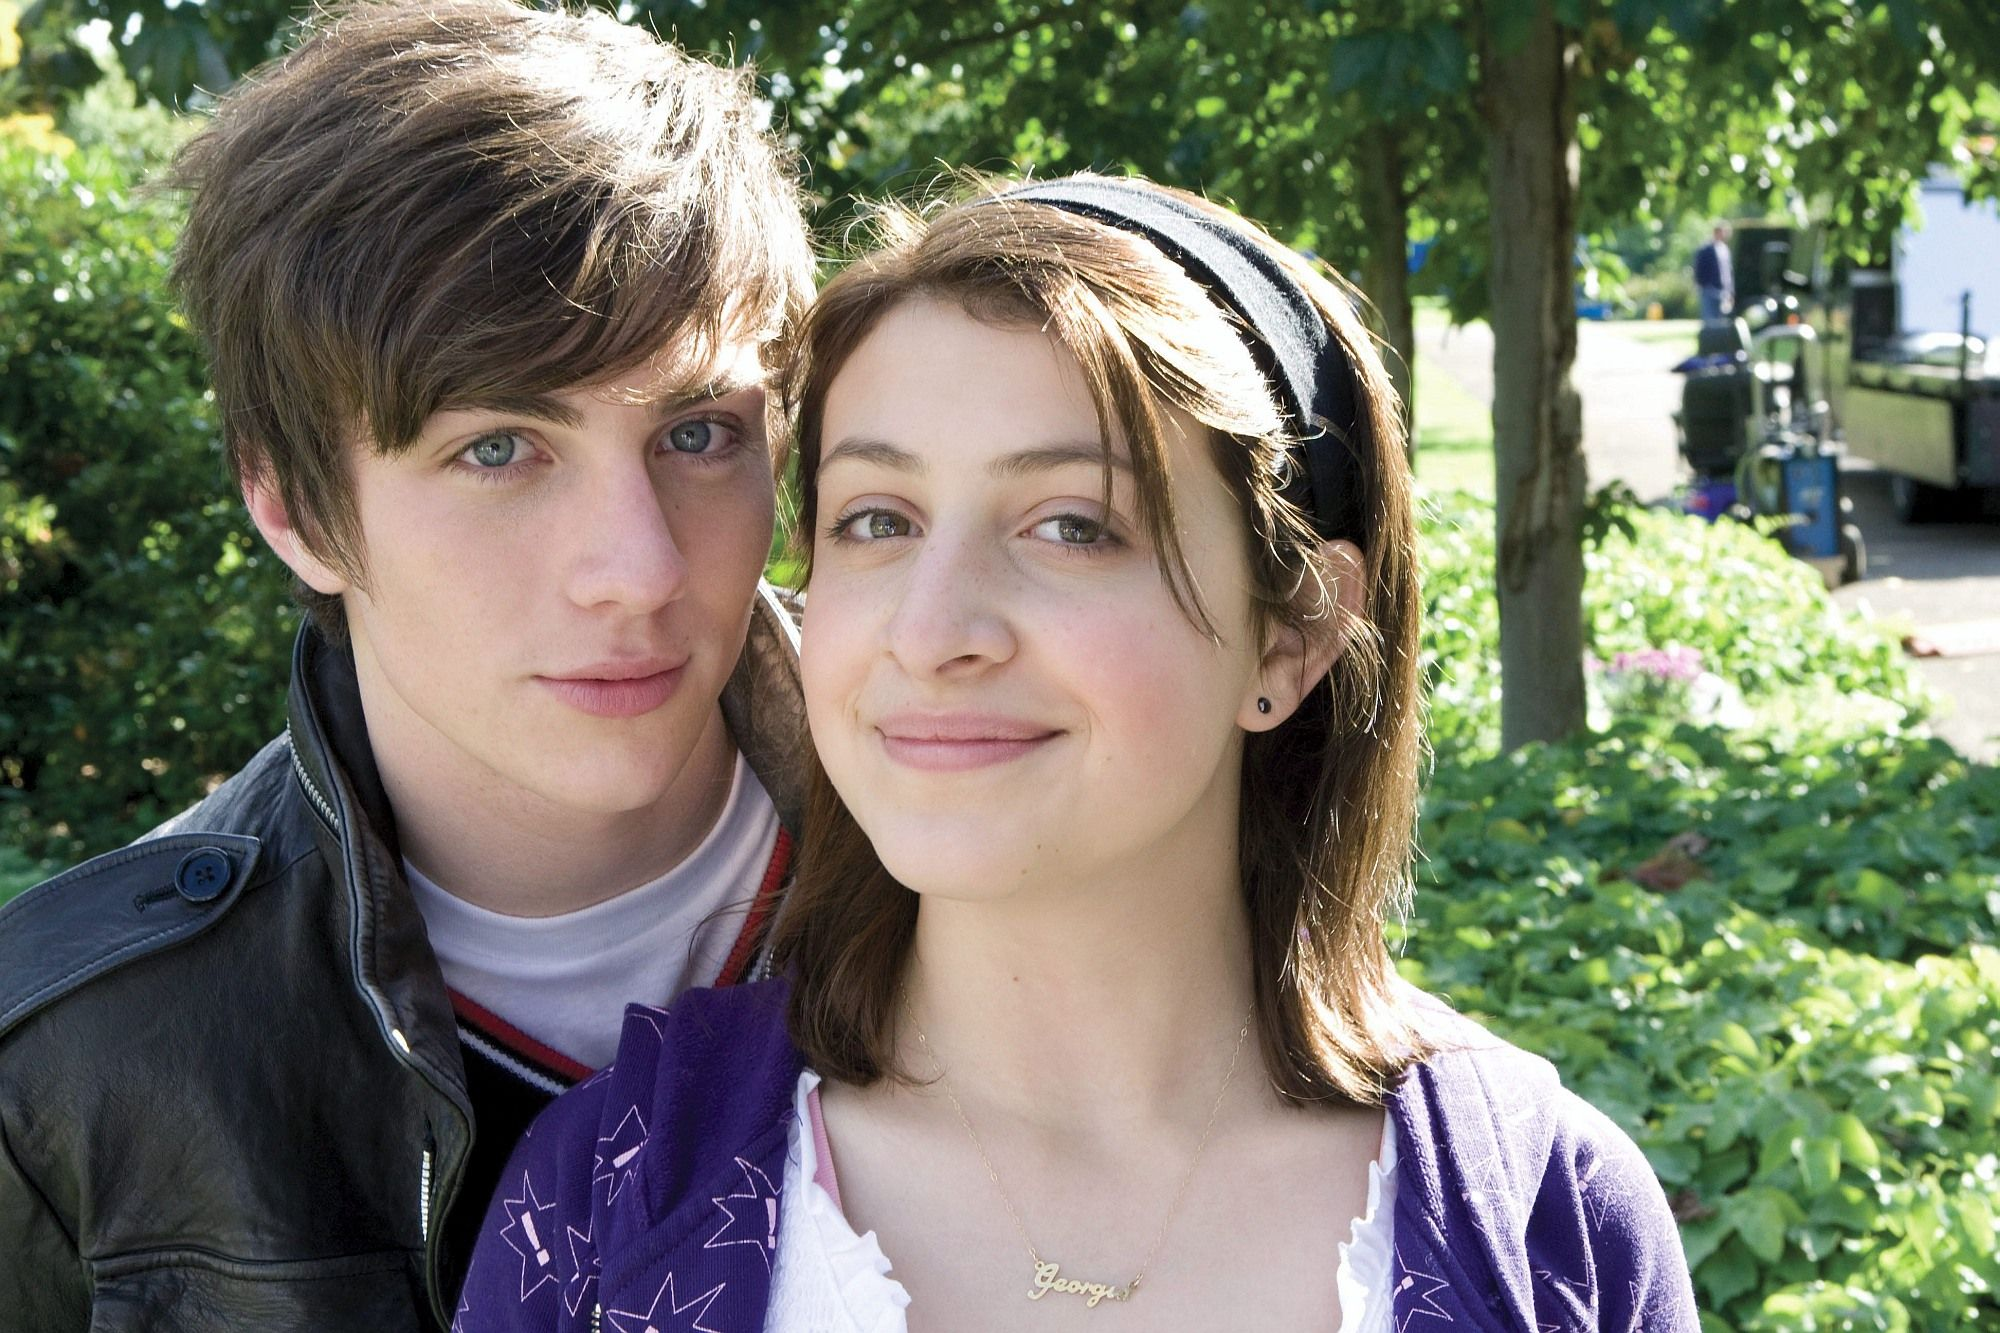 Aaron Johnson On The Set Of Angus Thongs And Perfect Snogging 2008 Angus Thongs And Perfect Snogging Georgia Groome Just Girly Things